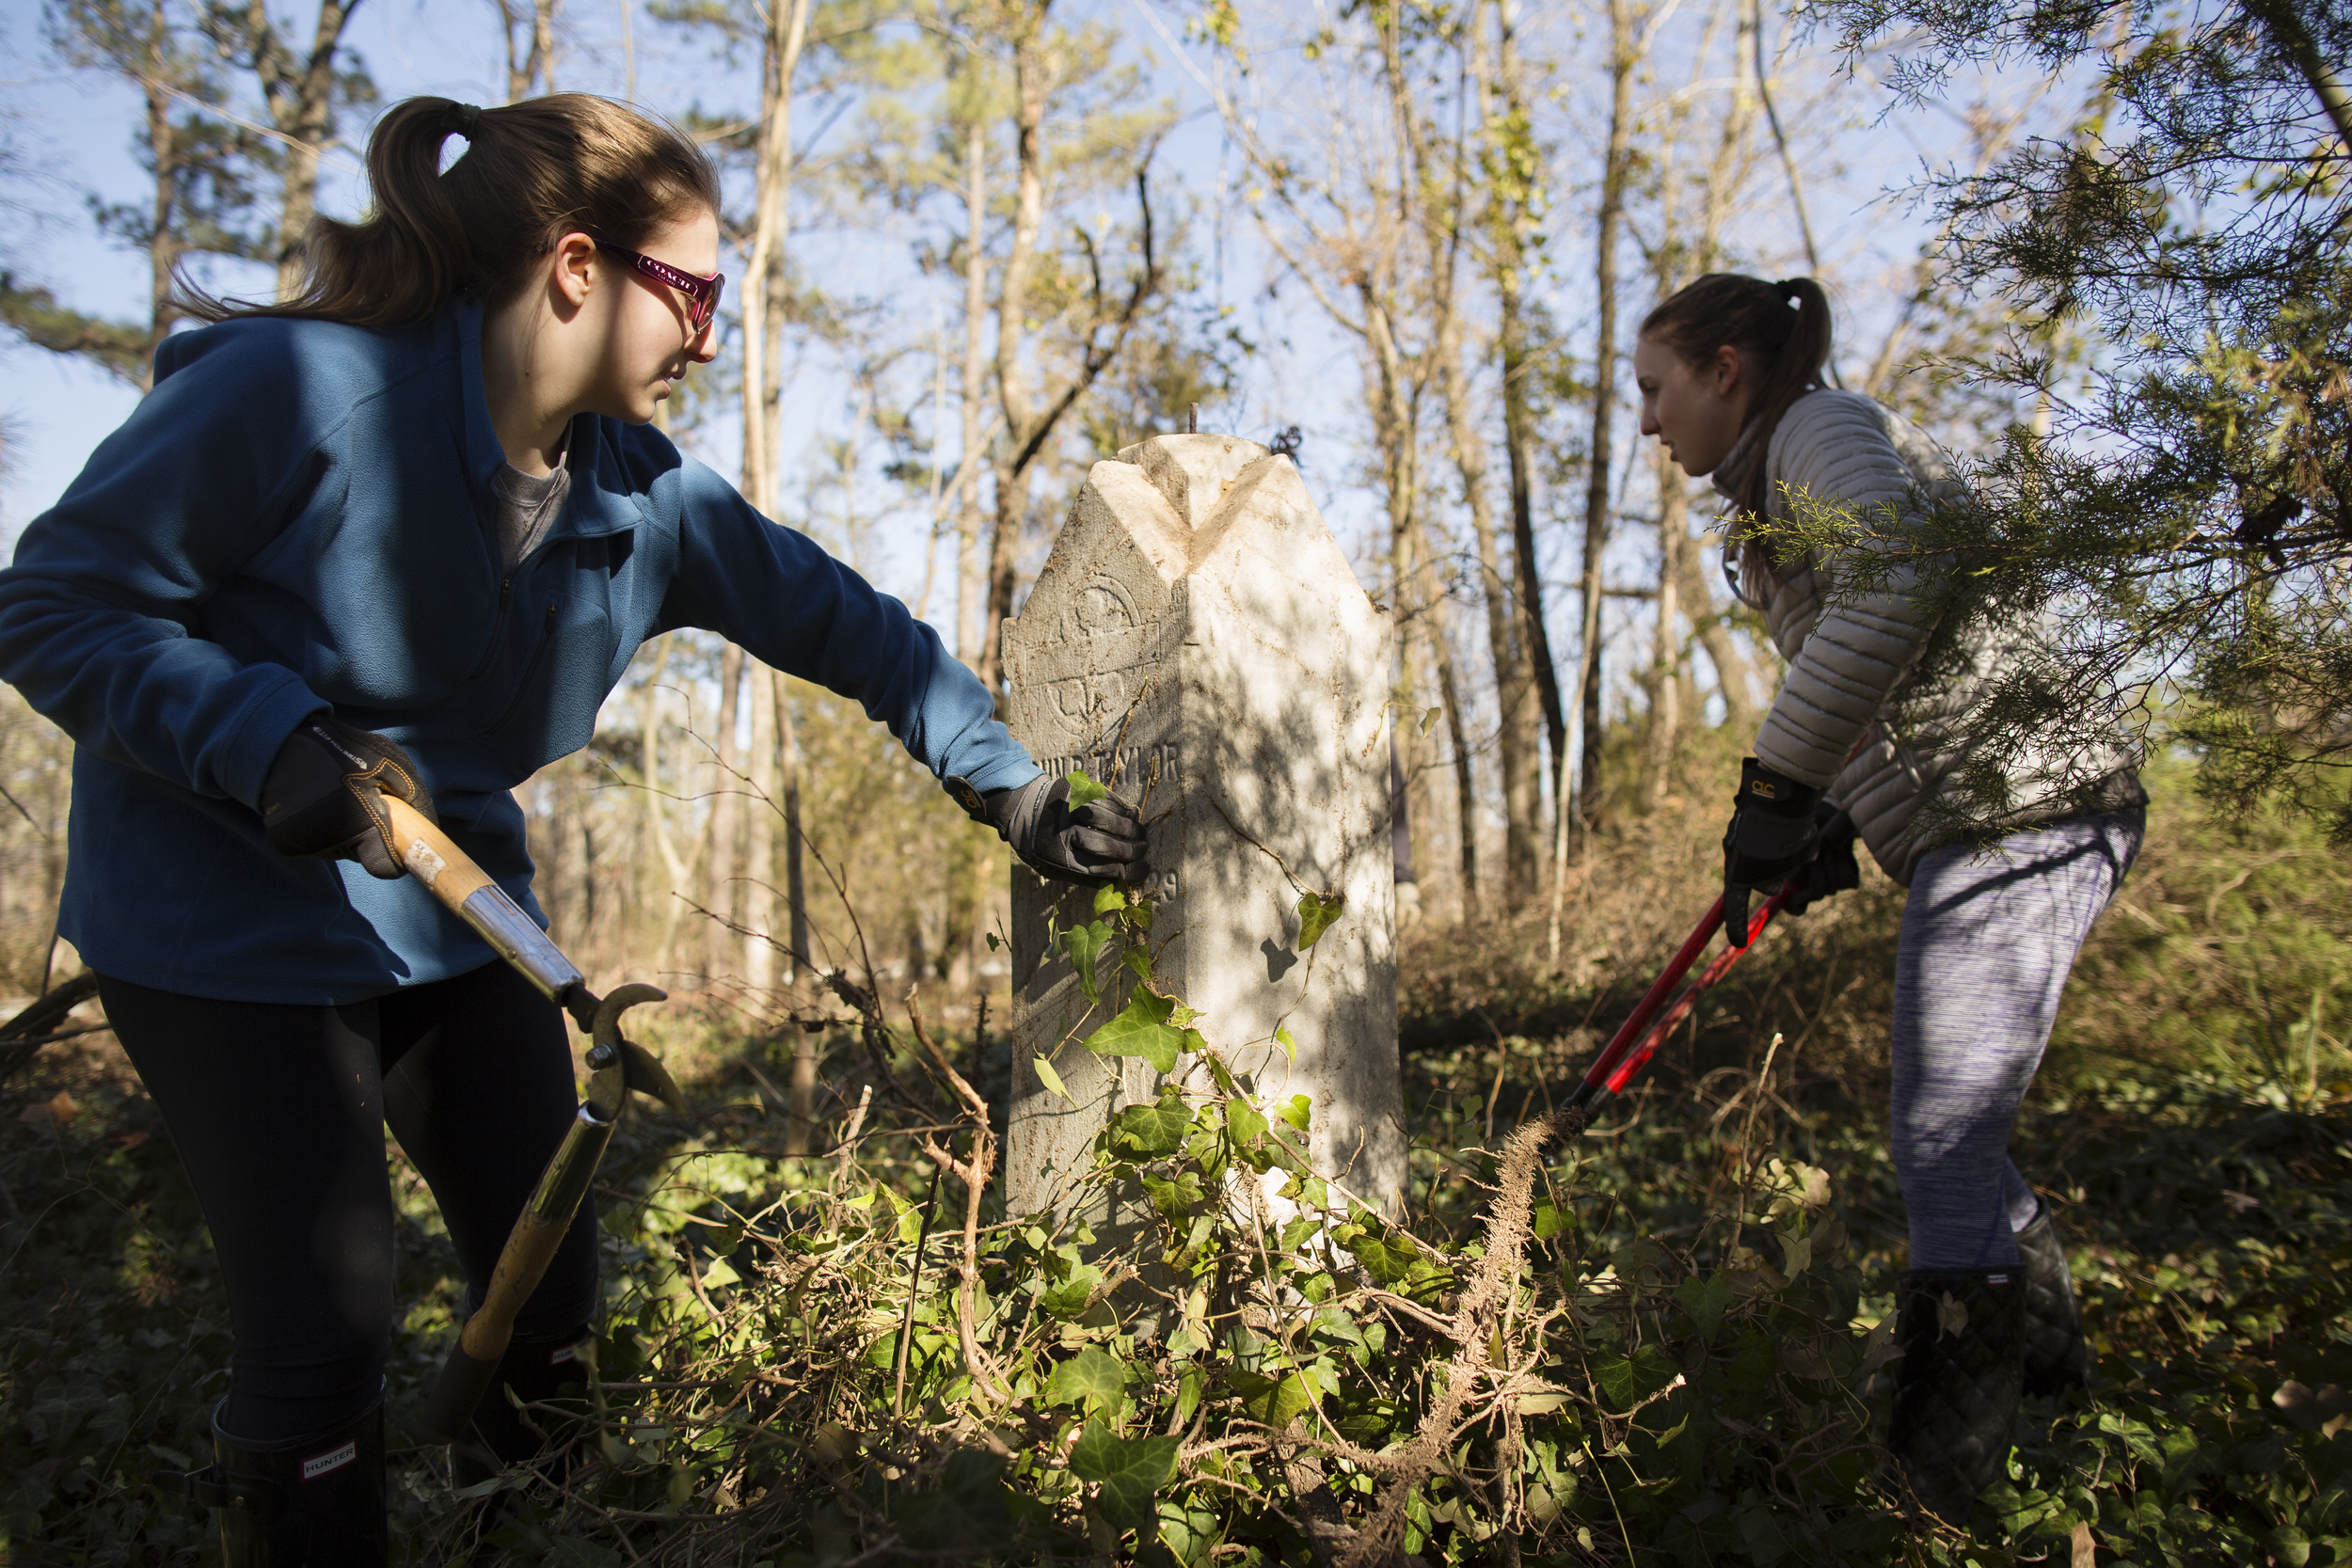 VCU students strip ivy from John B. Taylor's headstone at East End Cemetery, Henrico County/Richmond, Virginia, January 31, 2015. ©brianpalmer.photos 2015